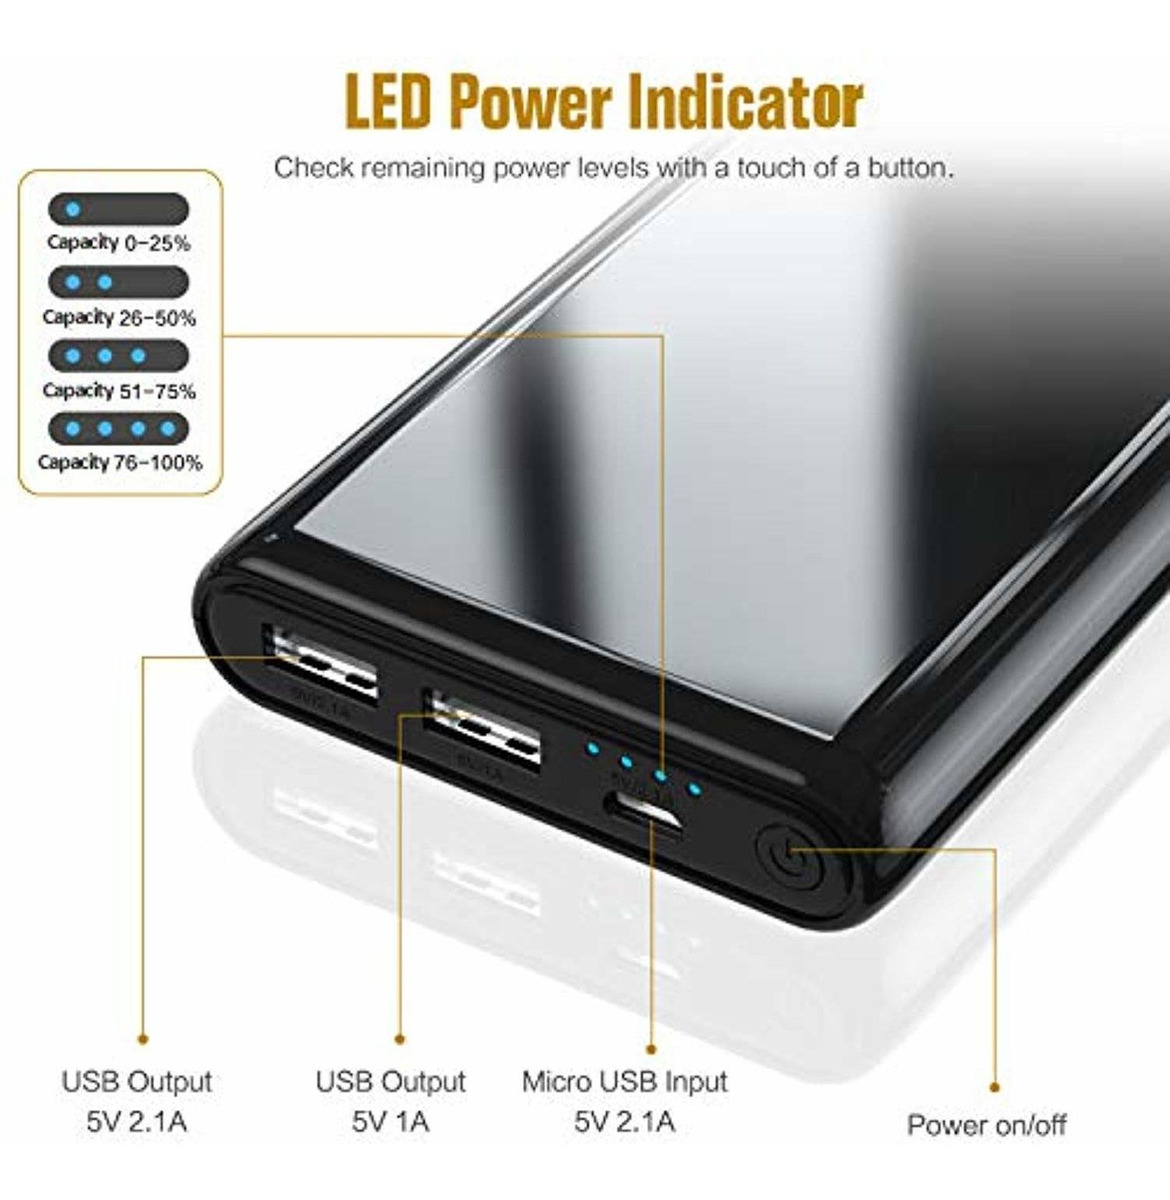 Portable Charger Power Bank 【25800mAh】Ultra High Capacity External Battery Pack High-Speed Recharging 2 USB Output with 4 LED Display Battery Phone Charger for Smart Phones,Android Phone,Tablet /& More